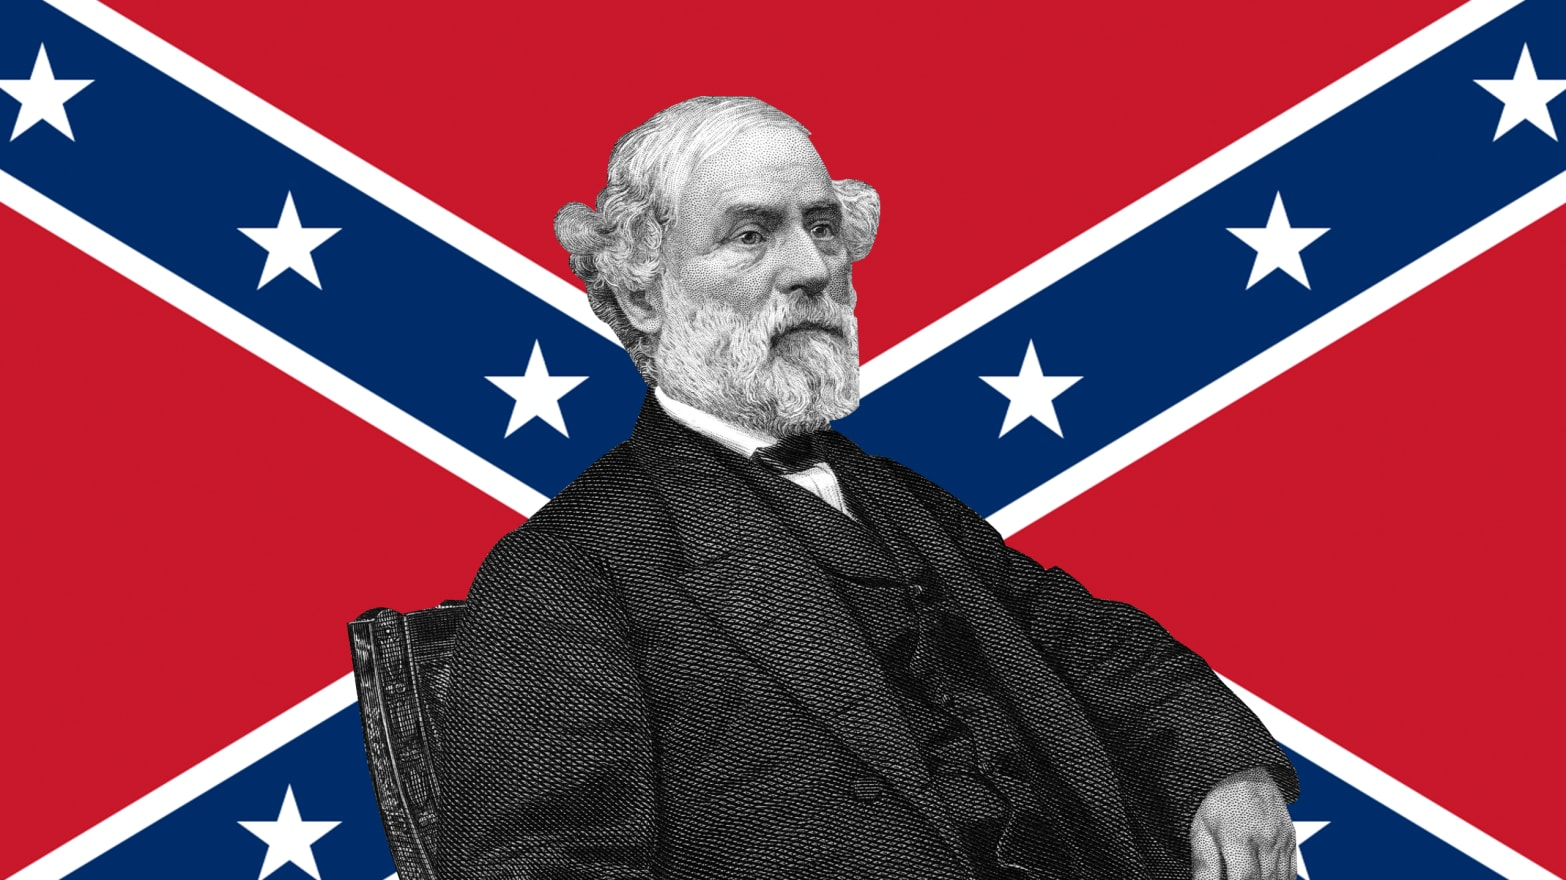 Even Robert E Lee Wanted The Confederate Flag Gone